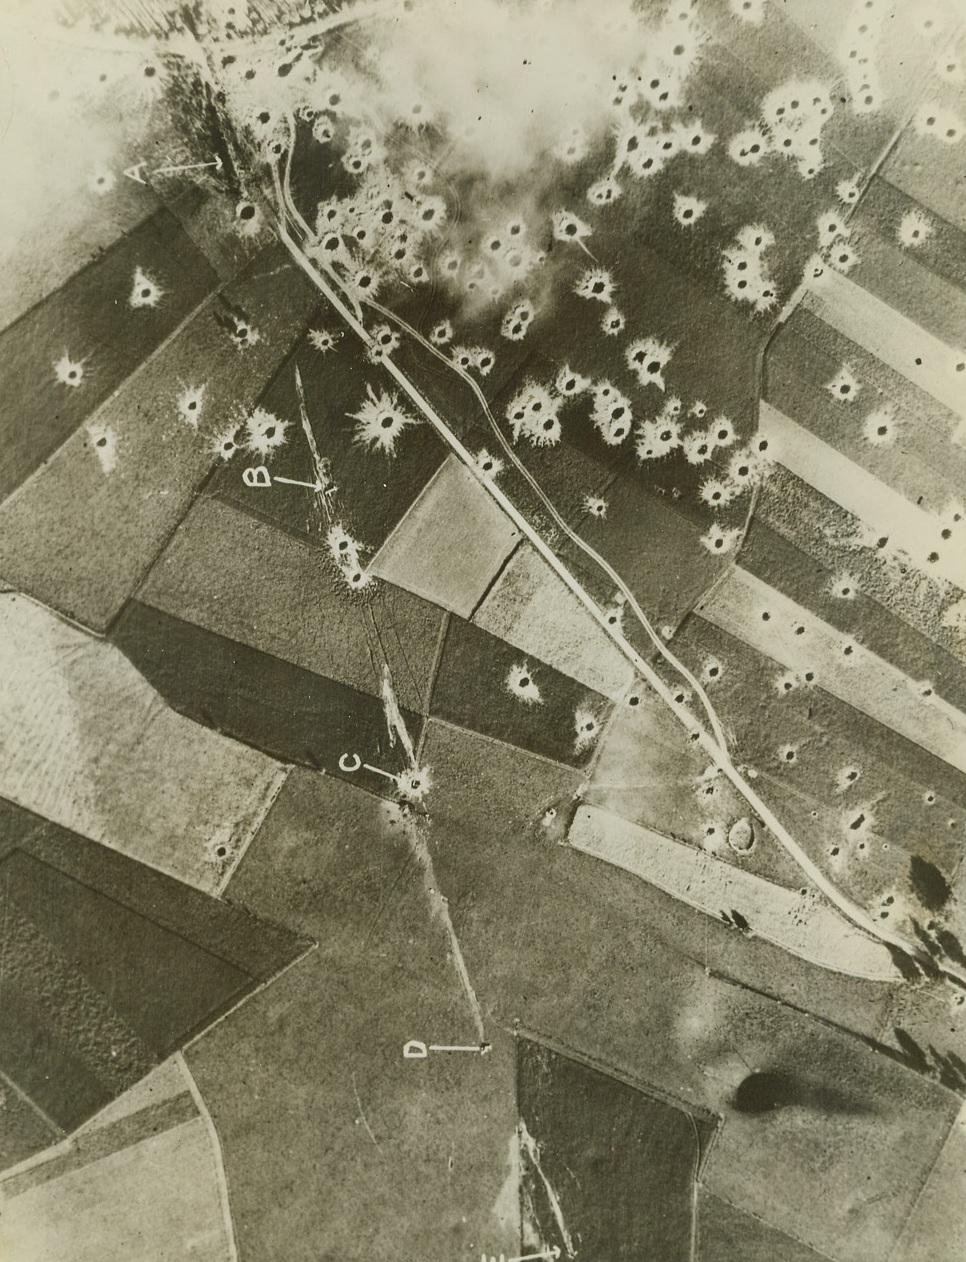 FLYING BOMB SITE BLASTED, 8/15/1944. FRANCE—A reconnaissance photo of a German Robot flying bomb site in the Pas de Calais area which has been attacked by Allied aircraft. Letter A, shows the launching platform surrounded by bomb craters. B,C,D, and E are flying bombs which have crashed on launching. Credit Line (British Official Photo from ACME);